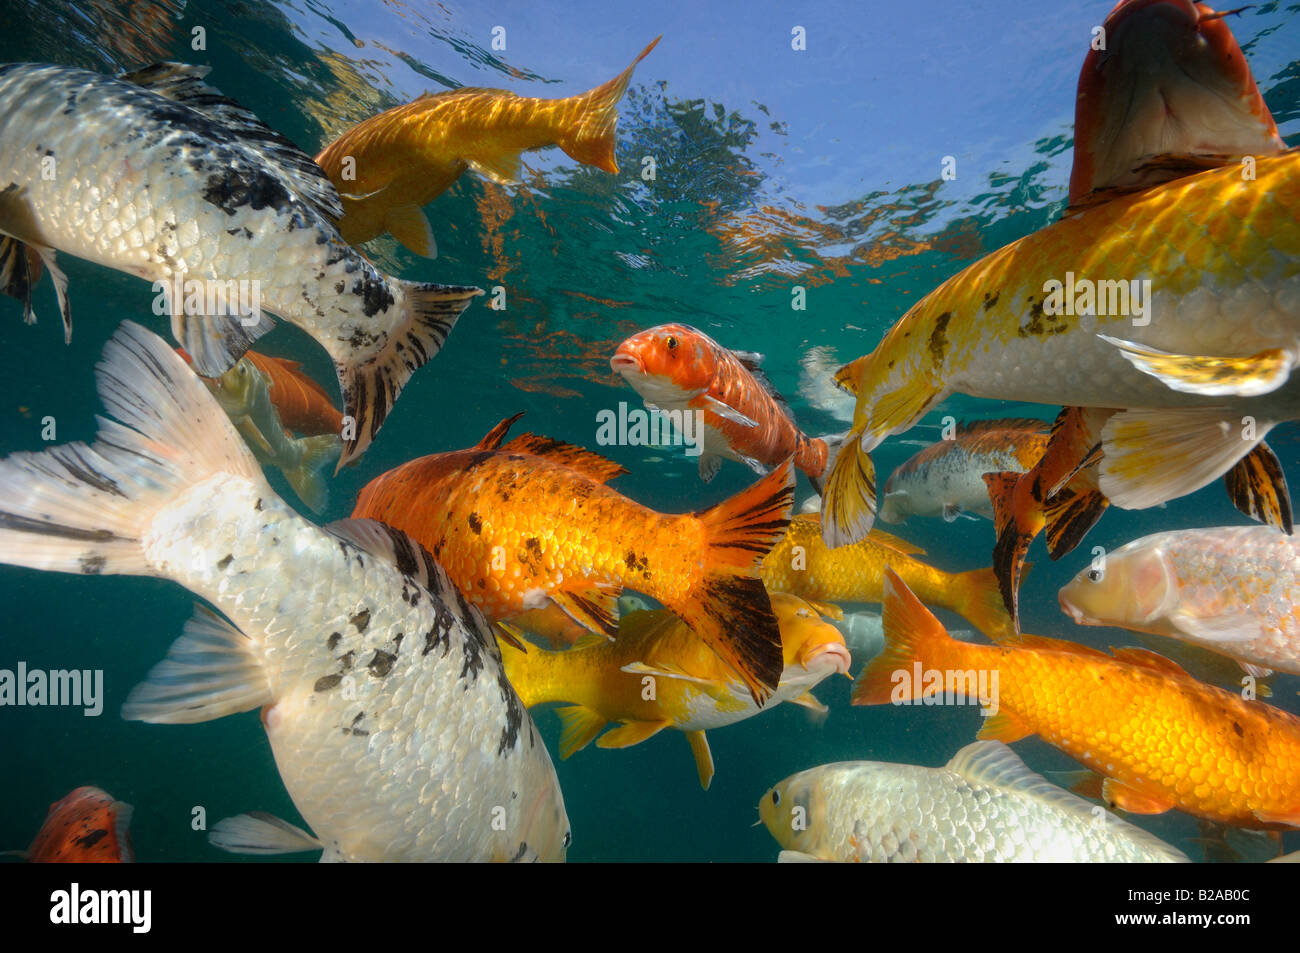 Ornamental photos ornamental images alamy for Carpe koi b